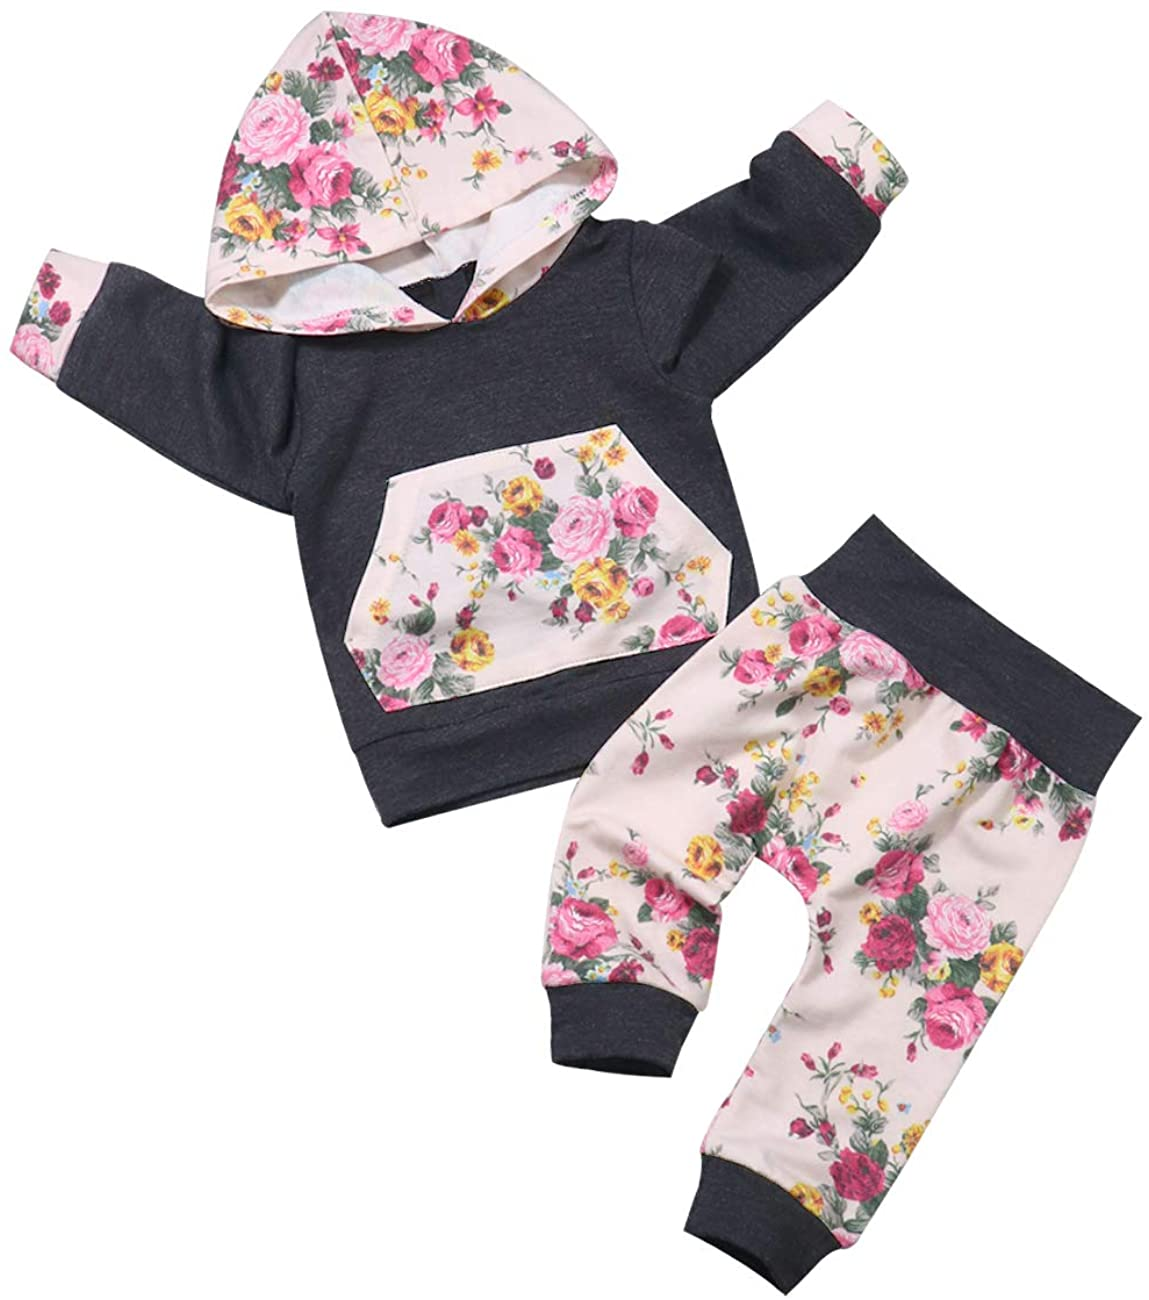 Seyouag Baby Girl Floral Hoodie Sweatshirt Long Sleeve Clothes and Stripe Pants Outfit Set